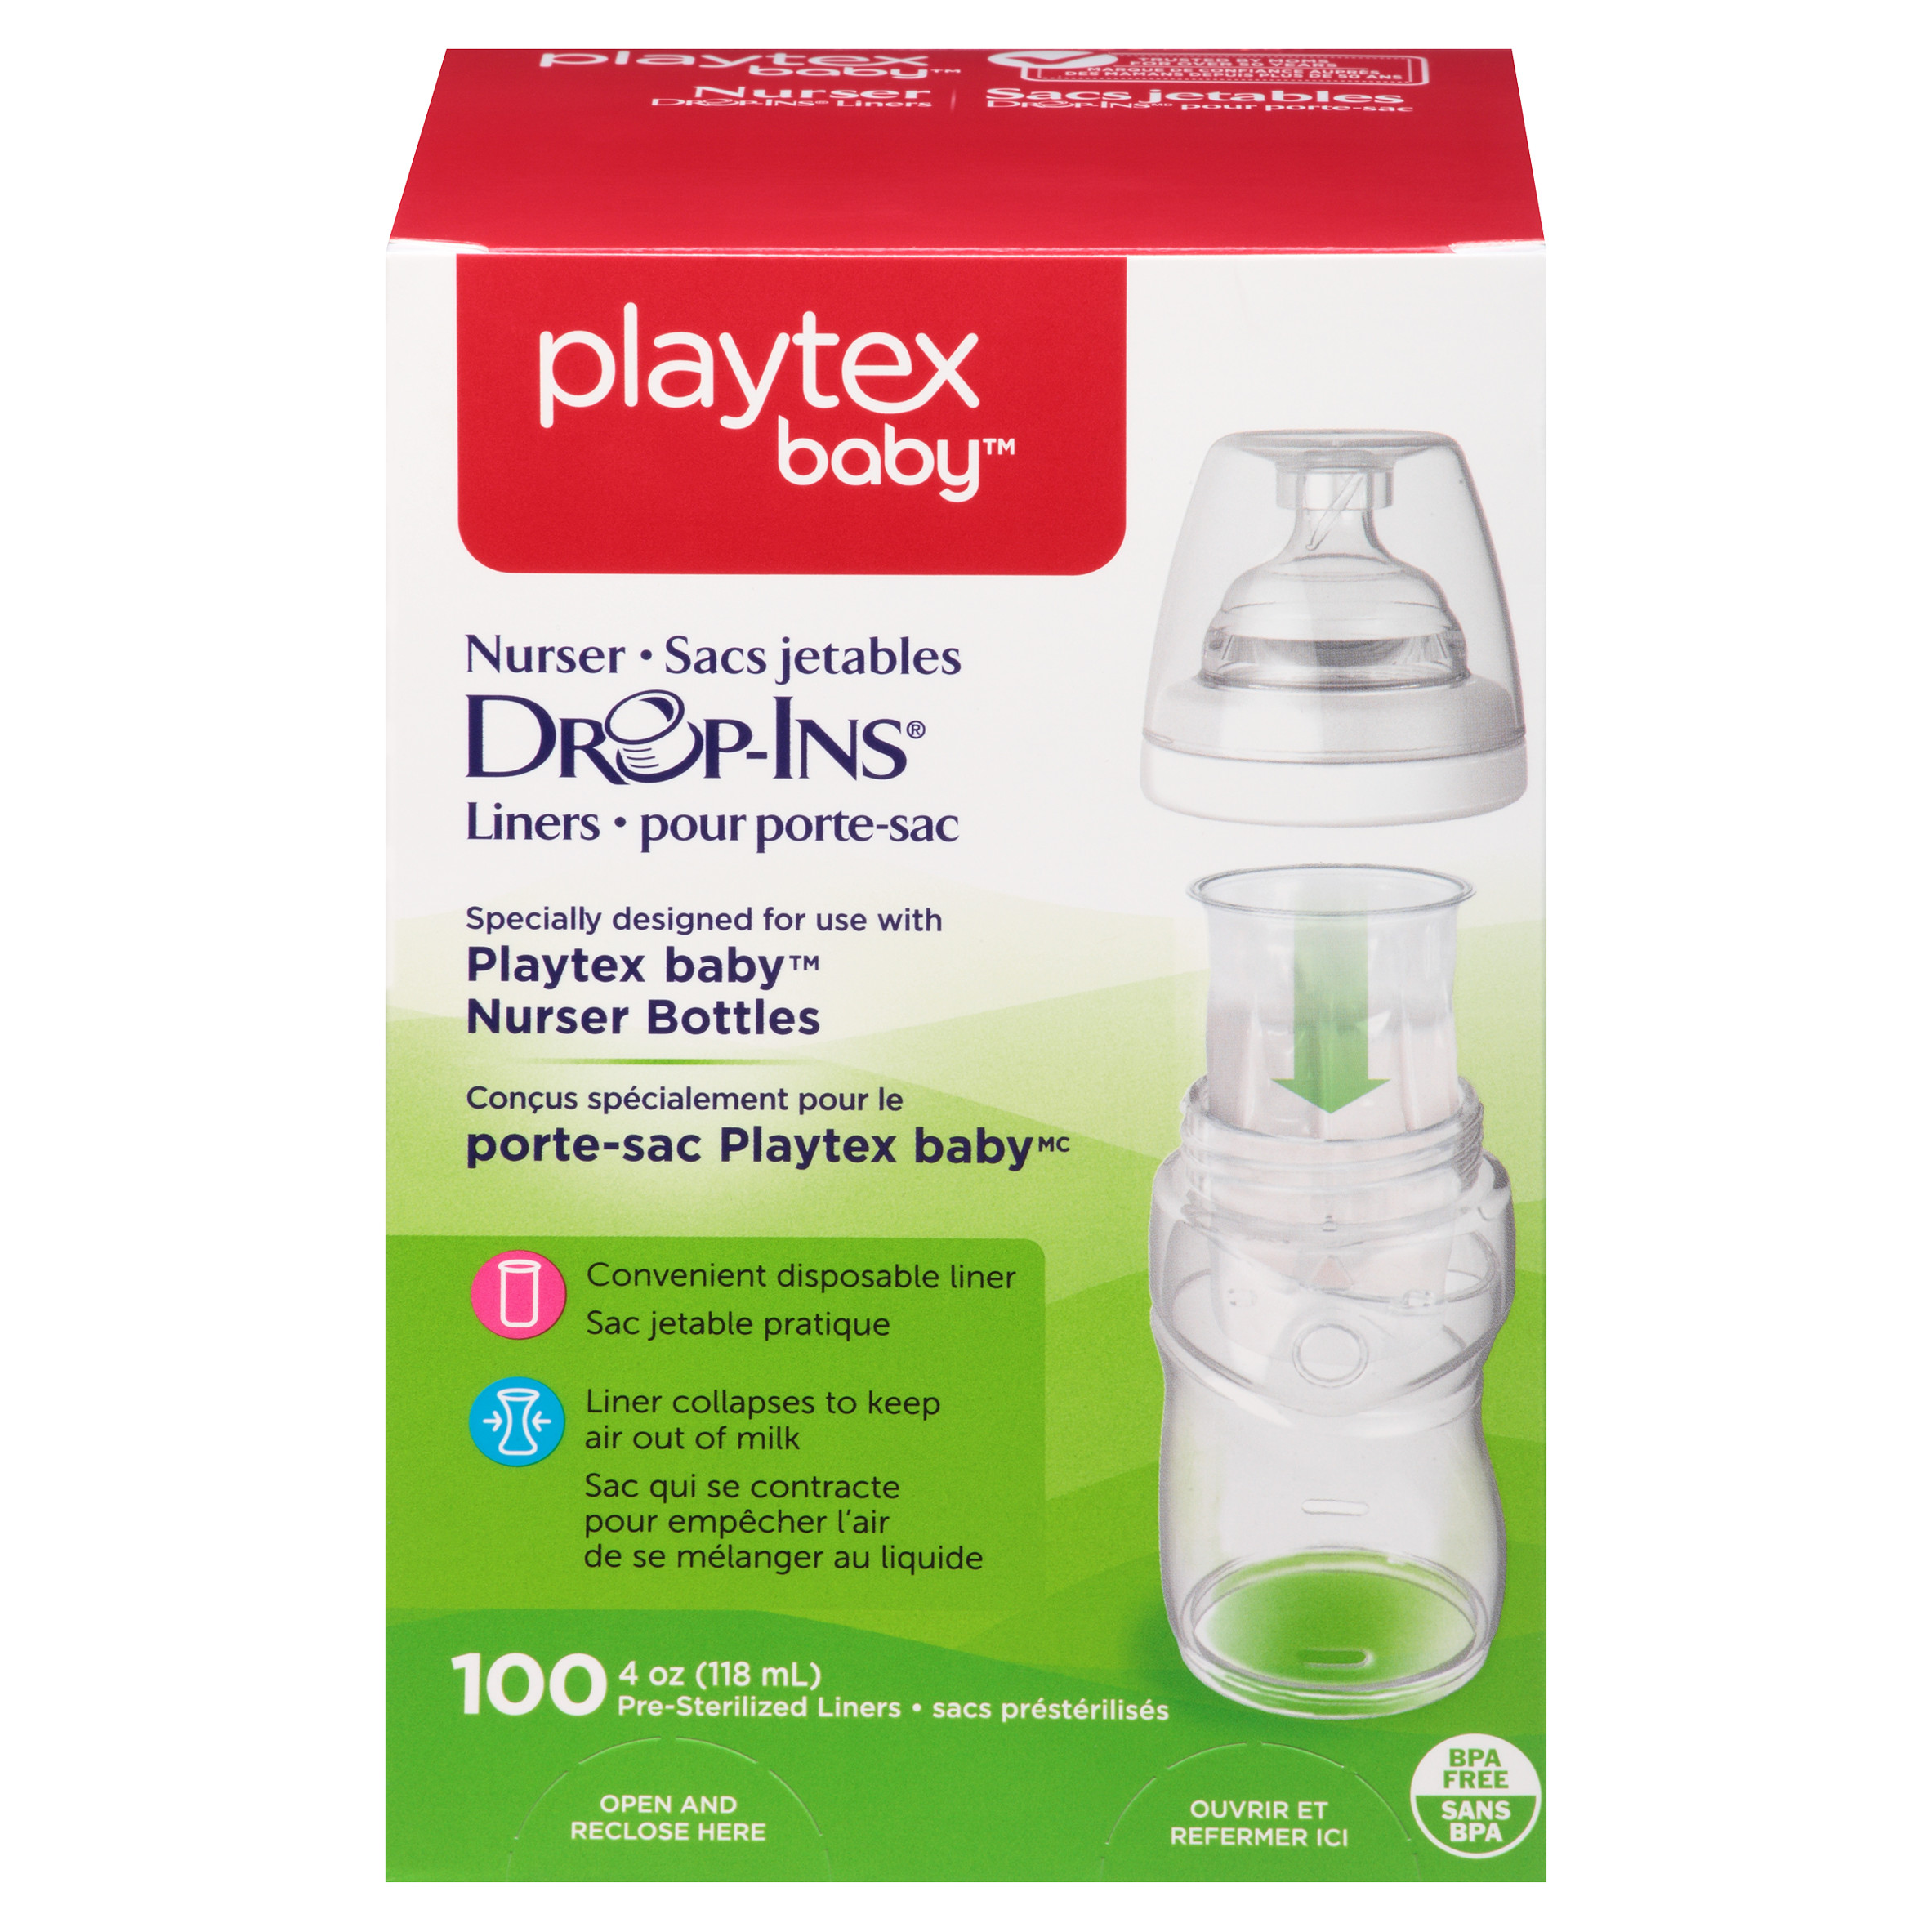 Playtex ULTRASEAL Disposable Pre Sterilized Baby Bottles 4oz Lot of 100